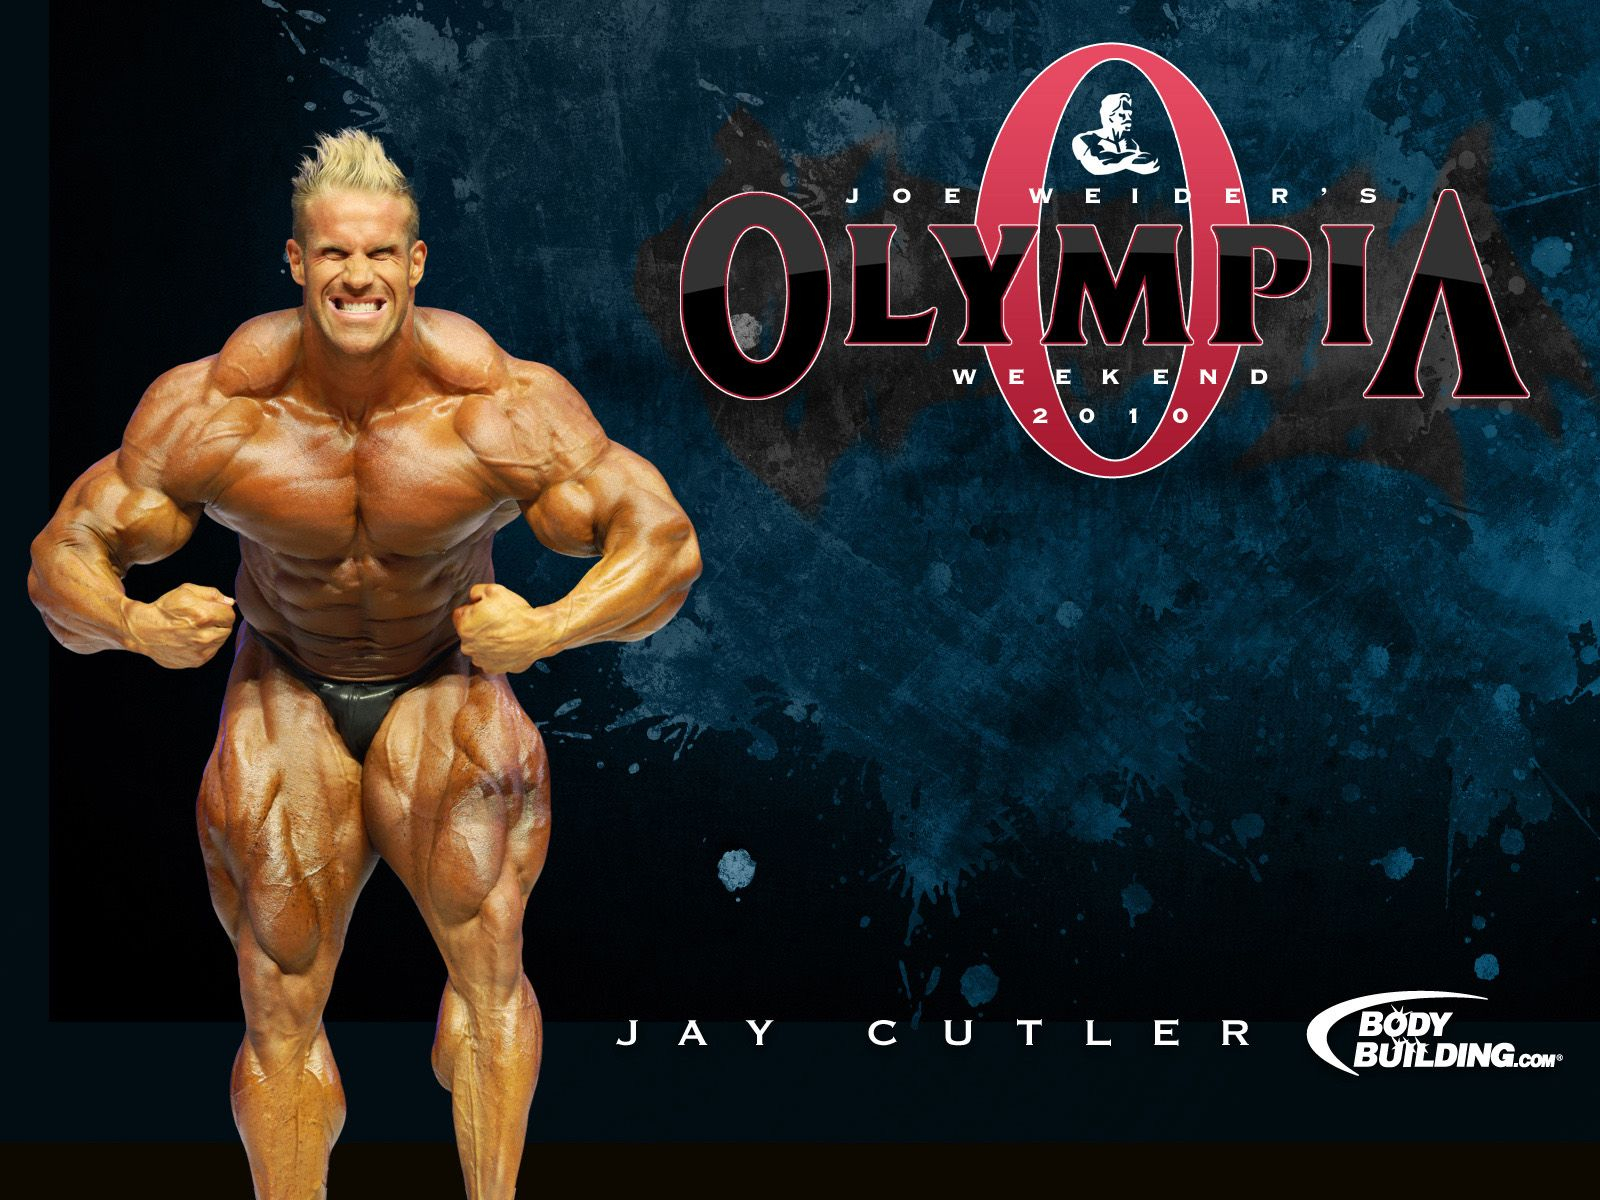 Mr Olympia 2010 Wallpaper   PintaW HD Wallpapers for your desktop 1600x1200